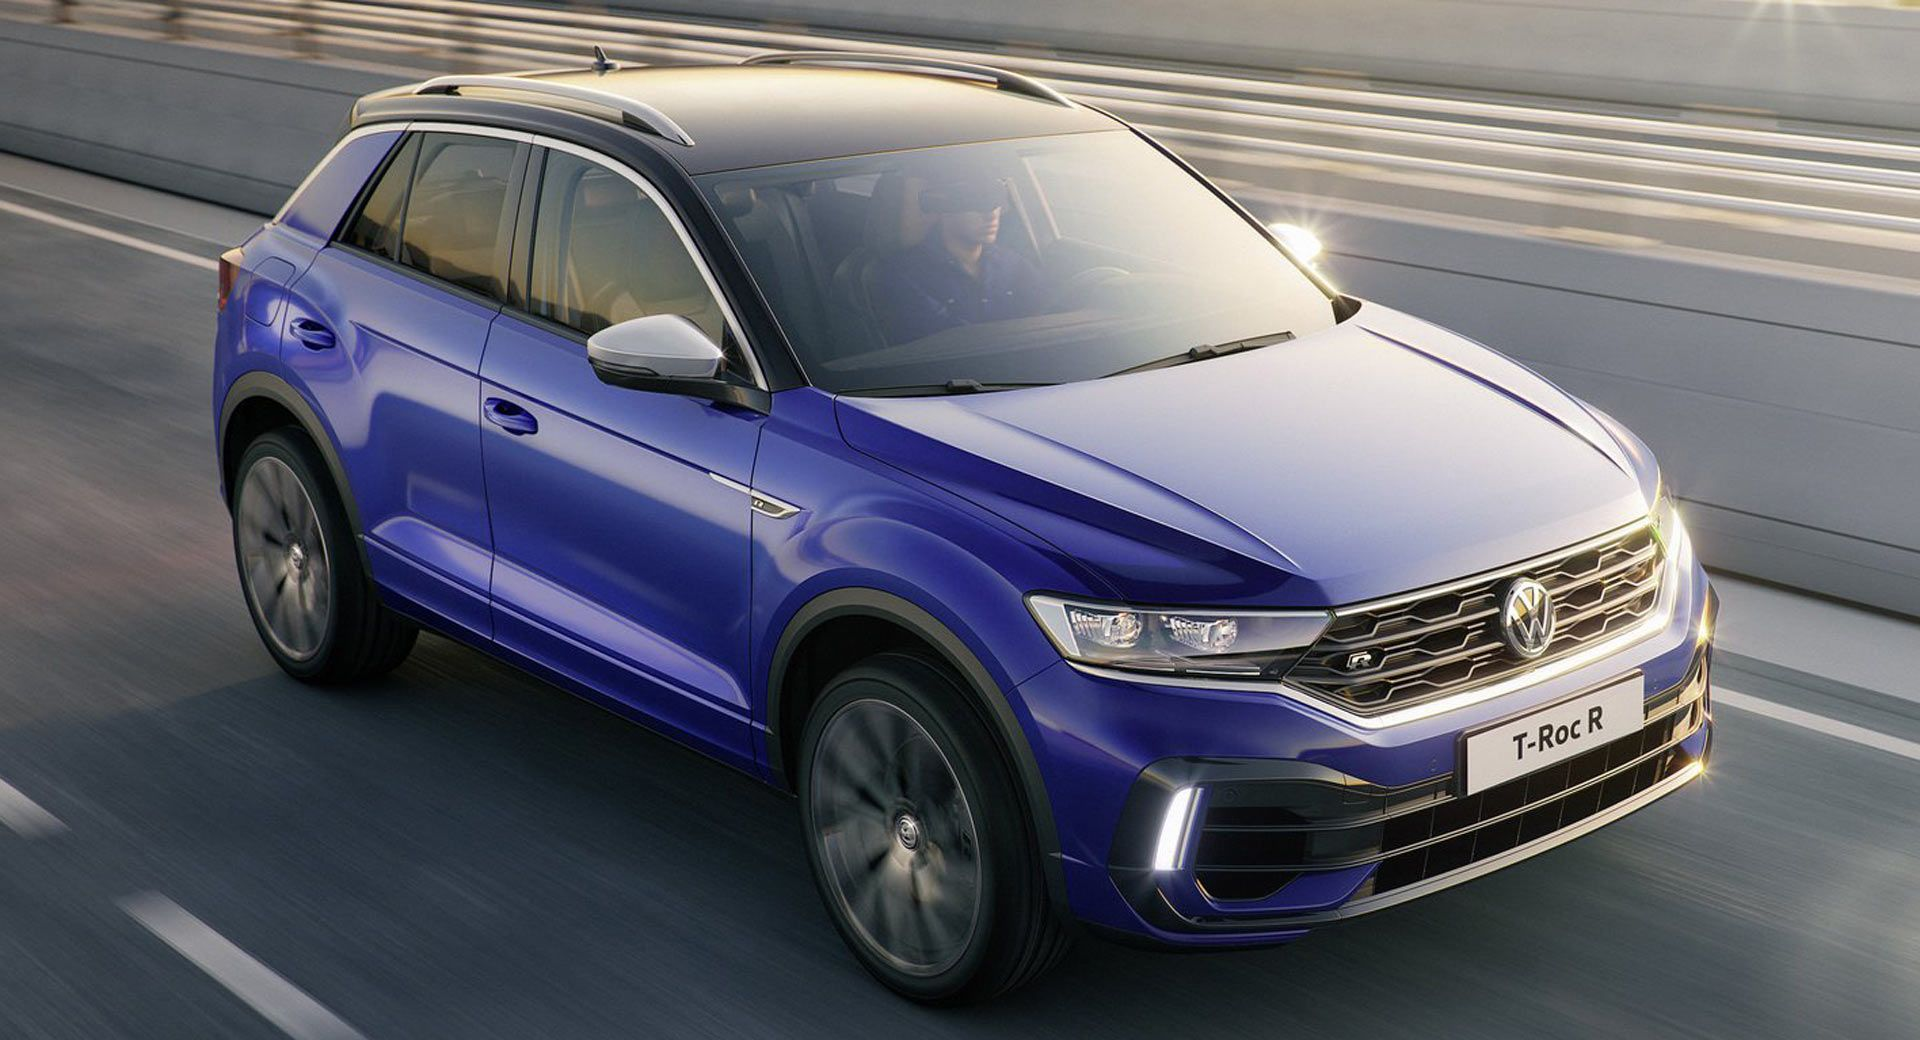 Vw Working On Two Suvs To Slot Below The Tiguan Could They Be Us Spec Versions Of T Roc And T Cross Reports Suv Usa Volkswagen New Cars Volkswagen Passat